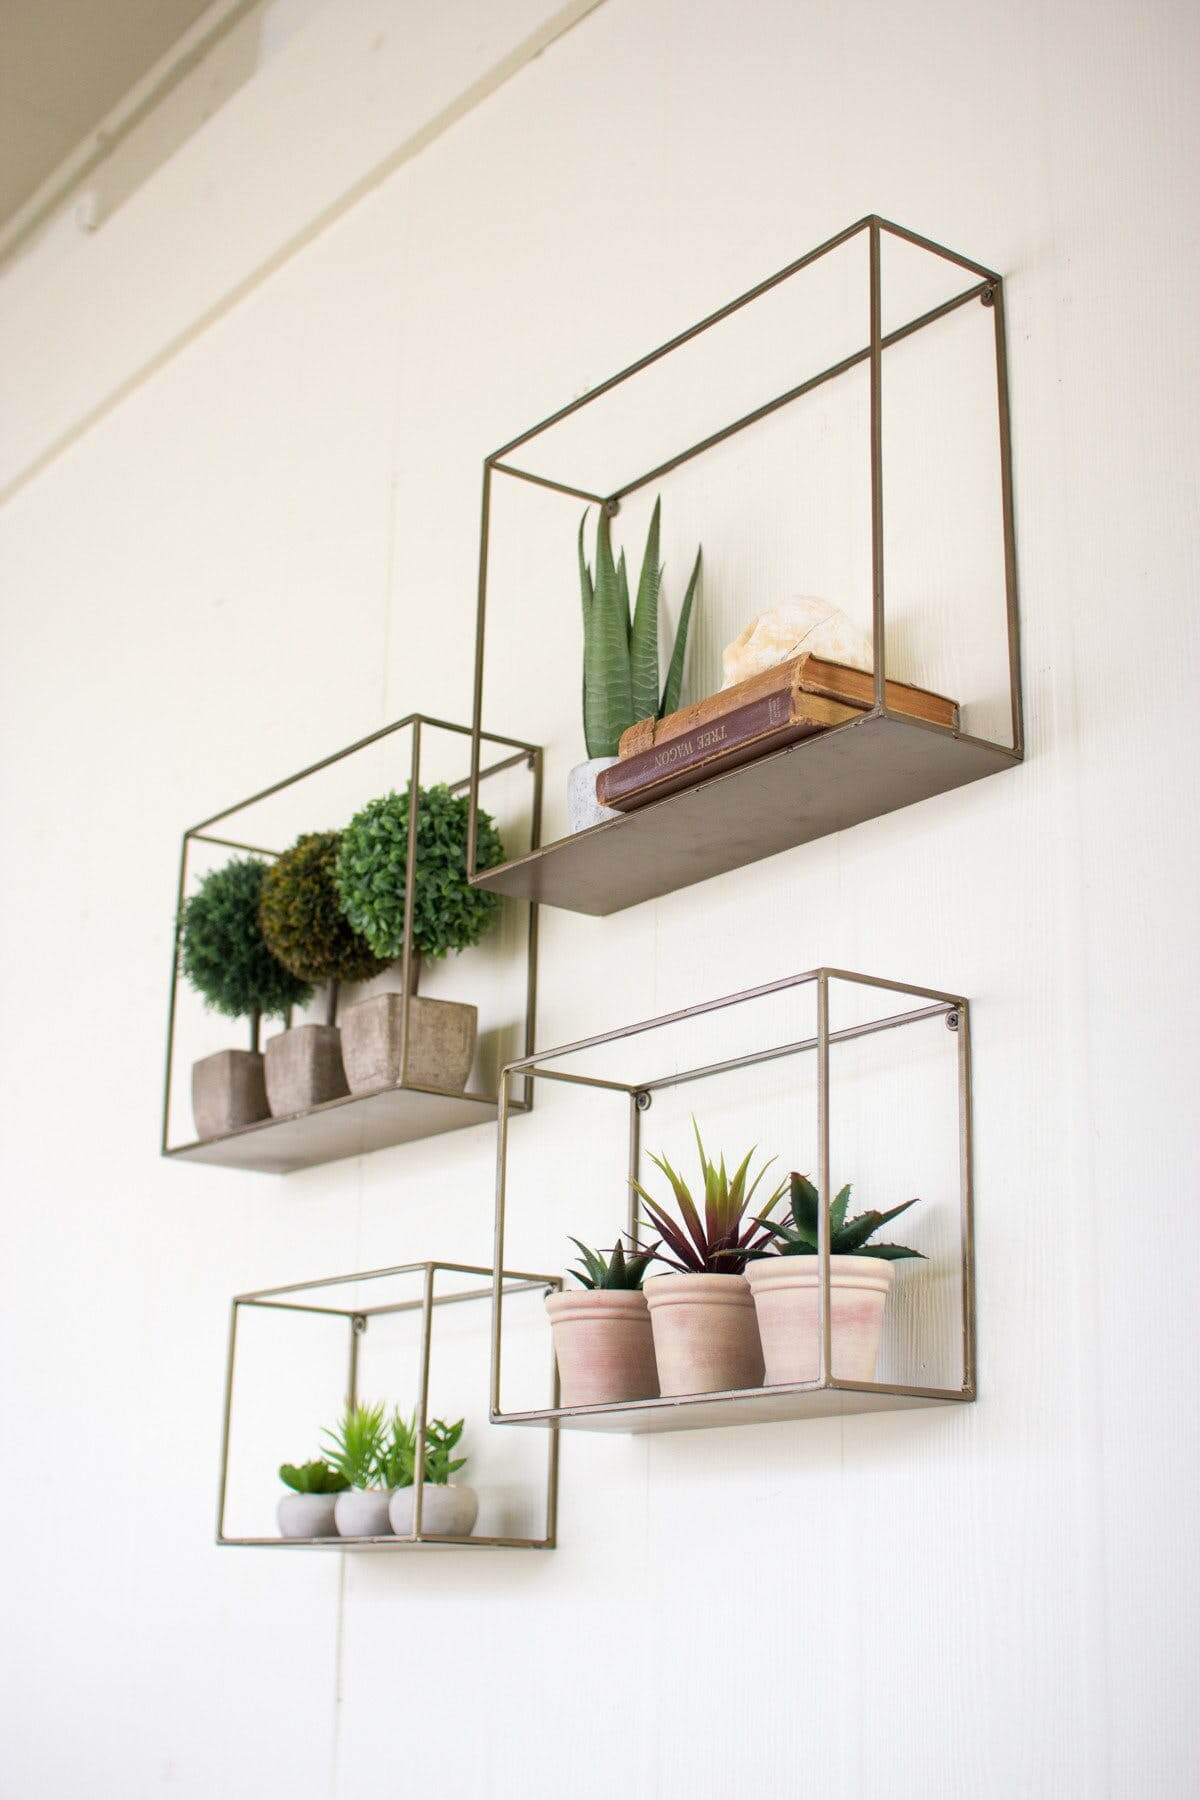 Understated Hanging Wall Shelving with Plants